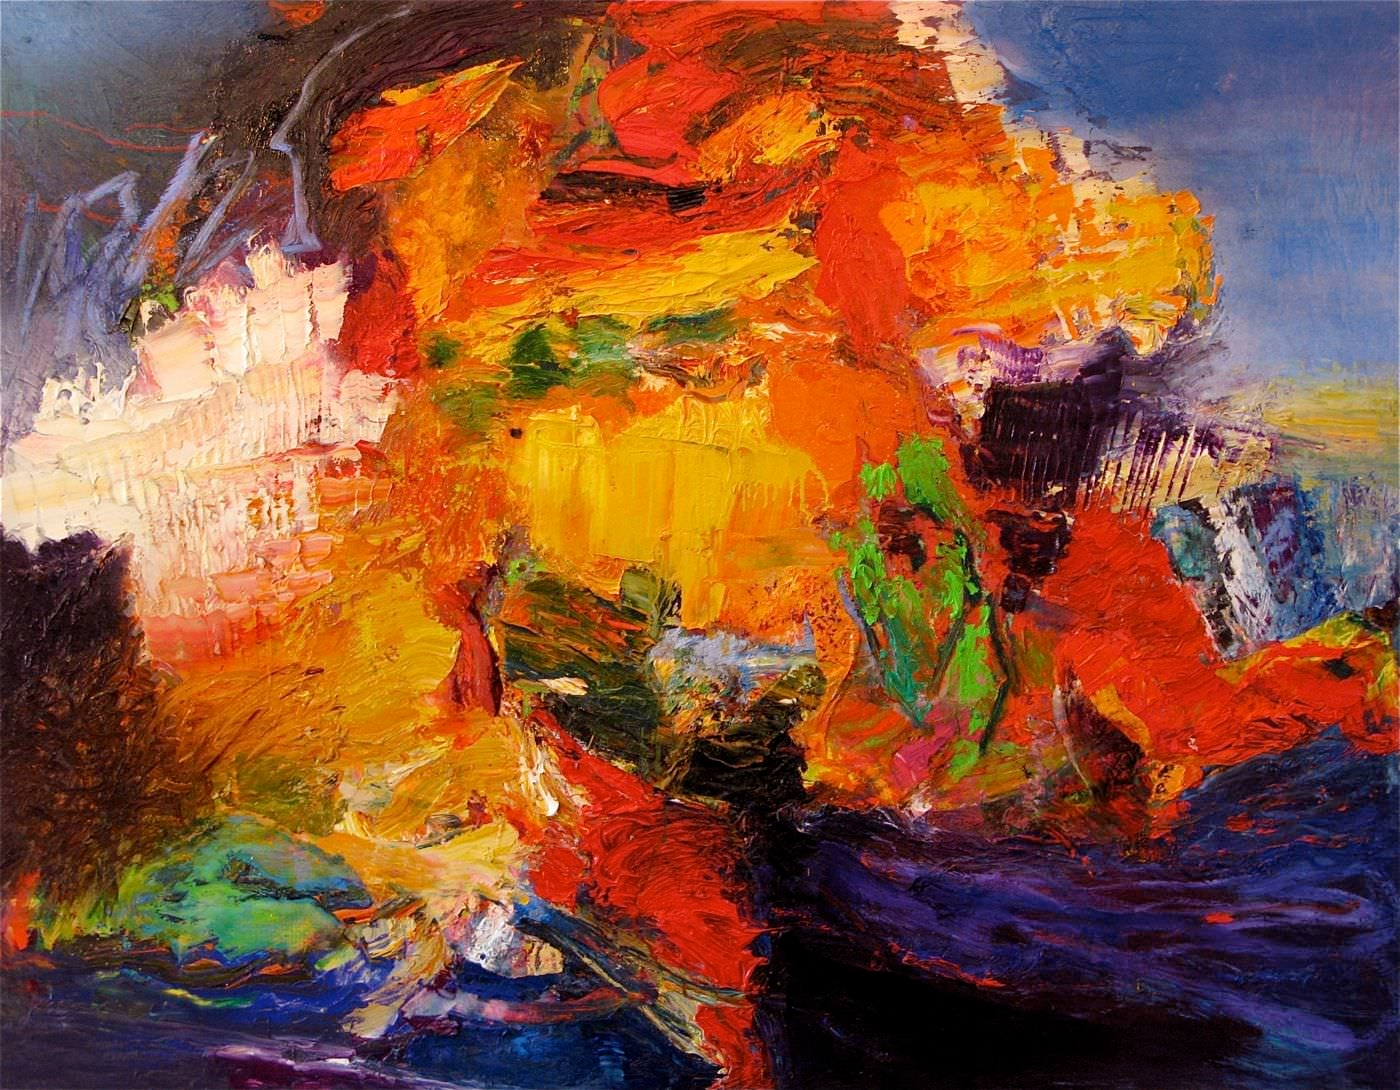 Most Famous Abstract Paintings Famous Abstract Art: 15+ Abstract Art Paintings